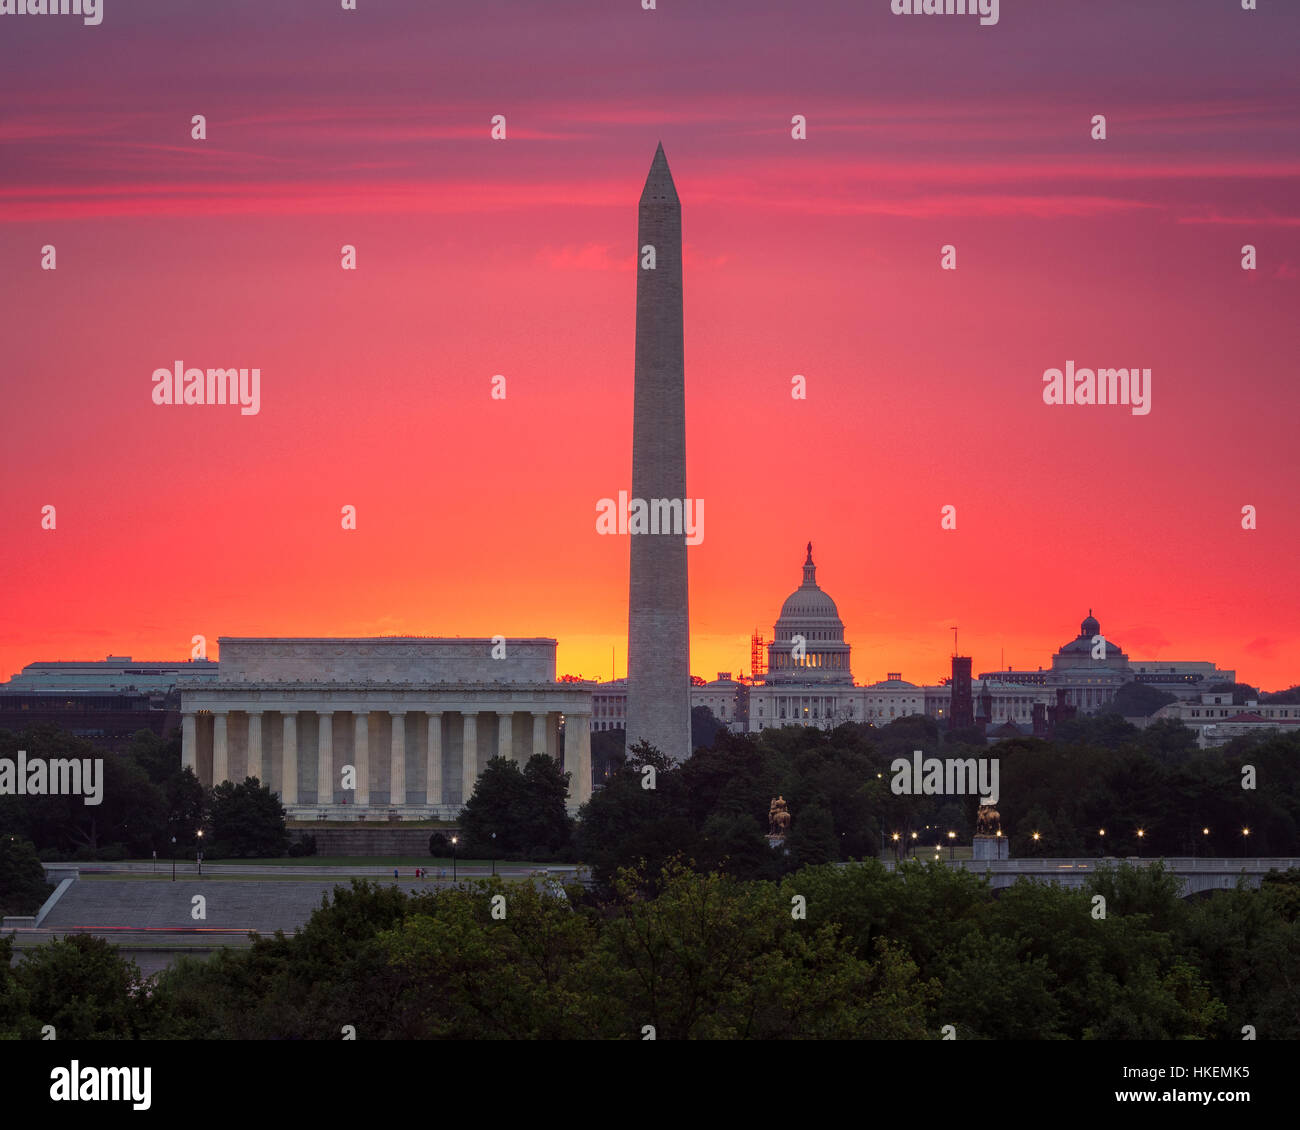 The glow of a rising sun behind the Capitol - Stock Image